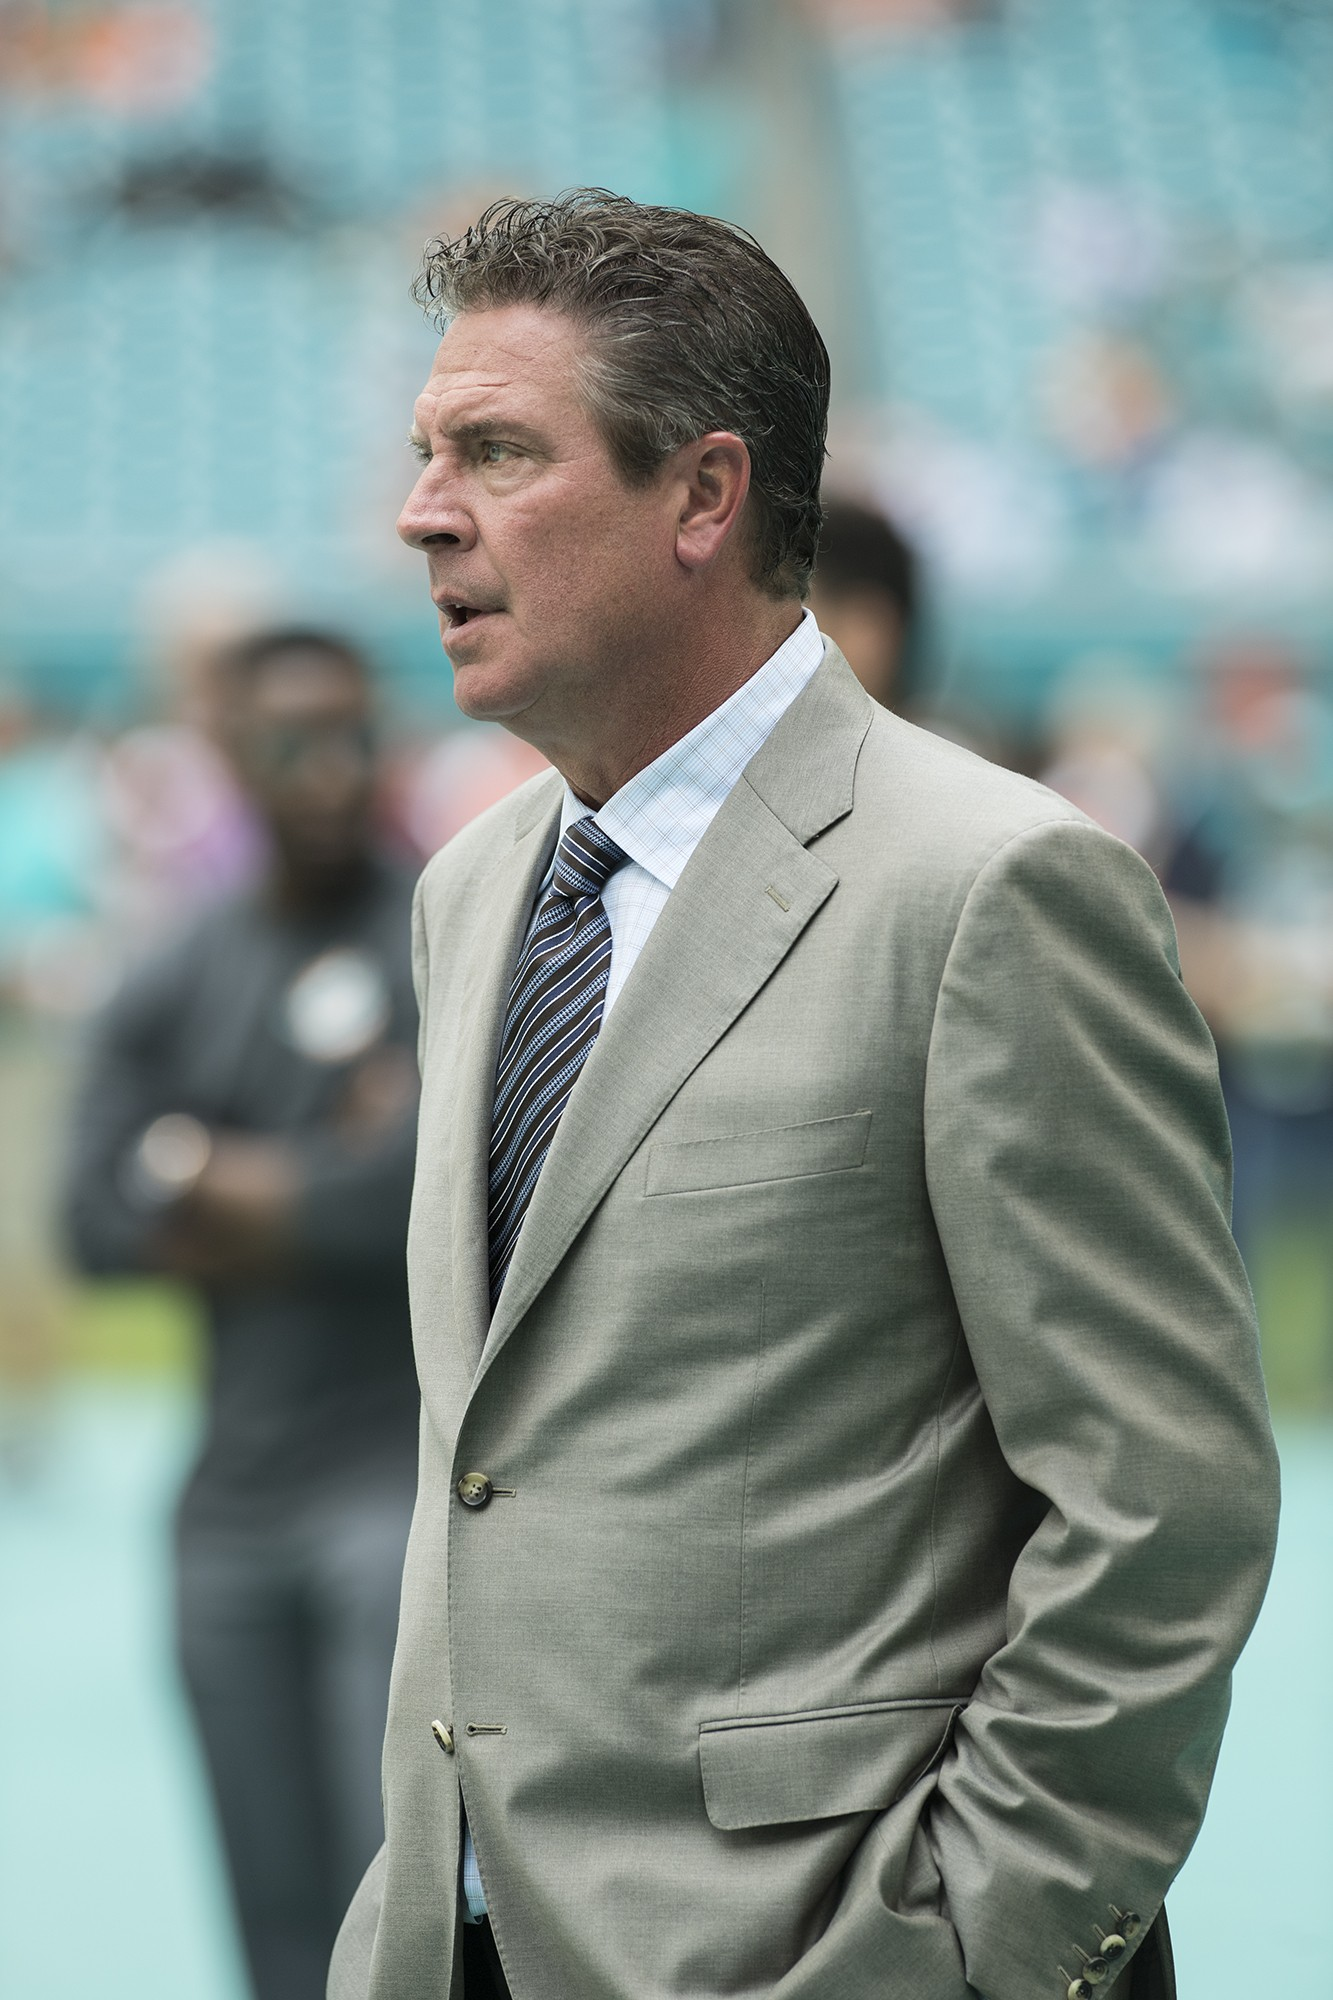 Former Dolphin great Dan Marino prior to the start of an NFL football game between the New York Jets on Sunday, Oct. 22, 2017, in Miami Gardens, Fla. (Donald Edgar/El Latino Digital)